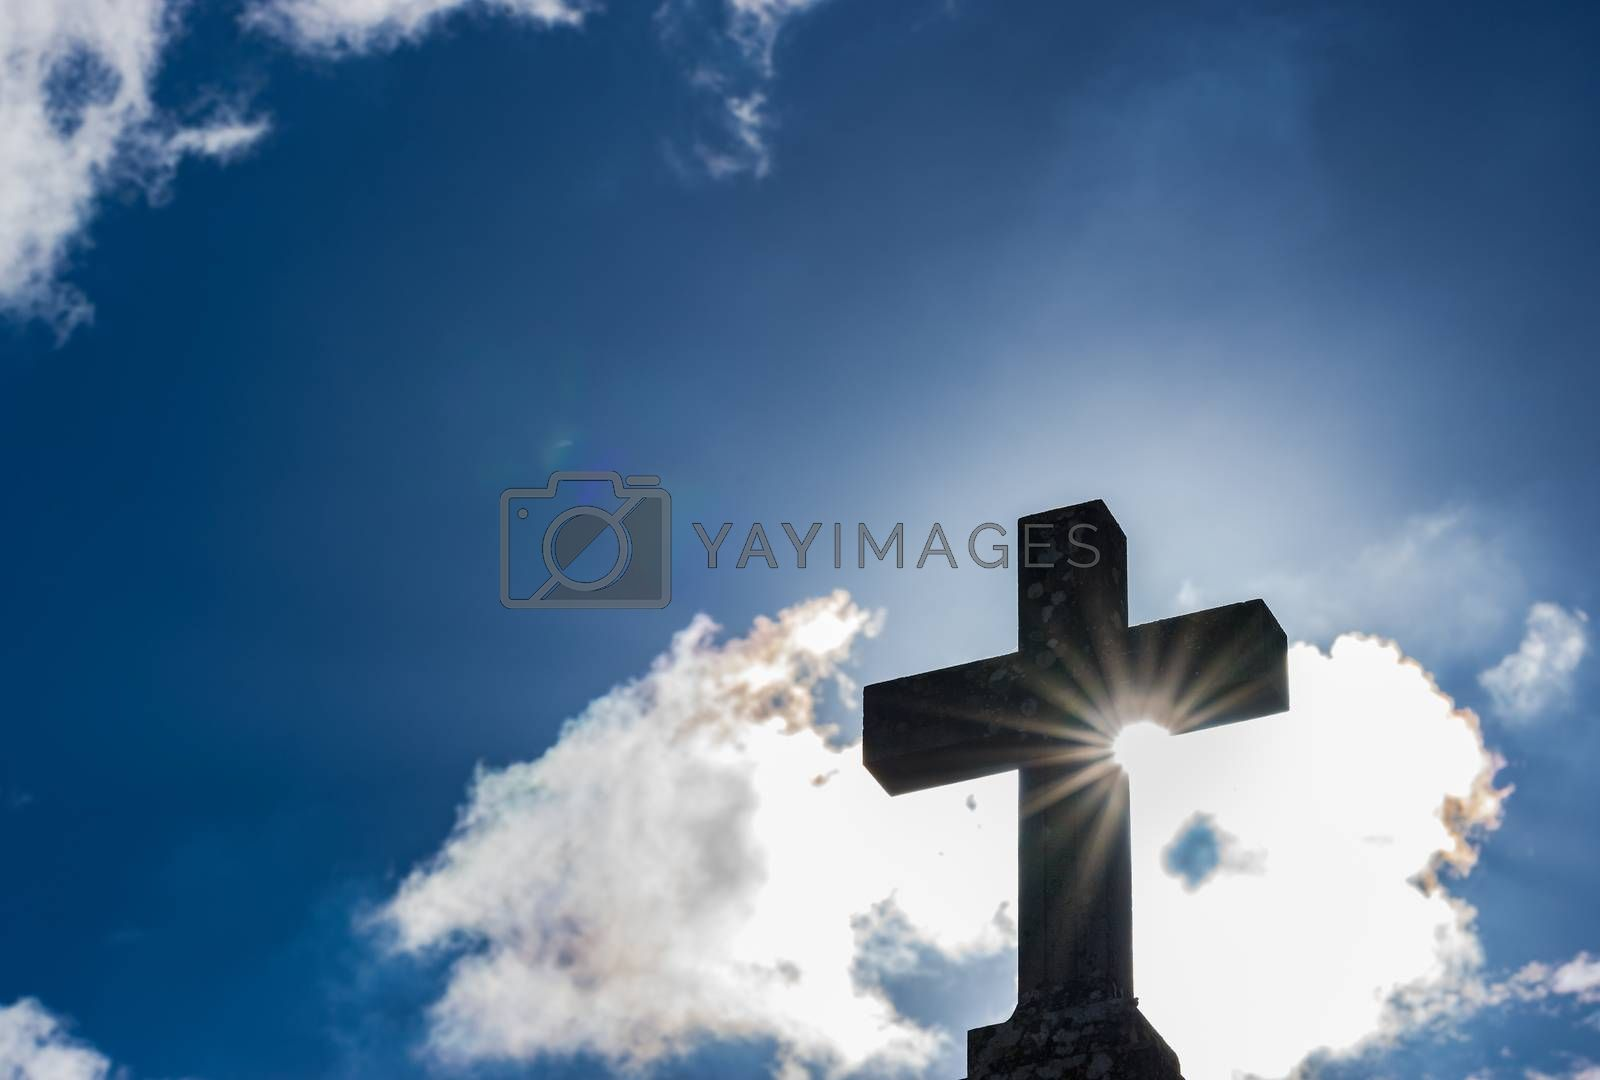 Cross against blue cloudy sky with sunlight, religion christianity concepts background